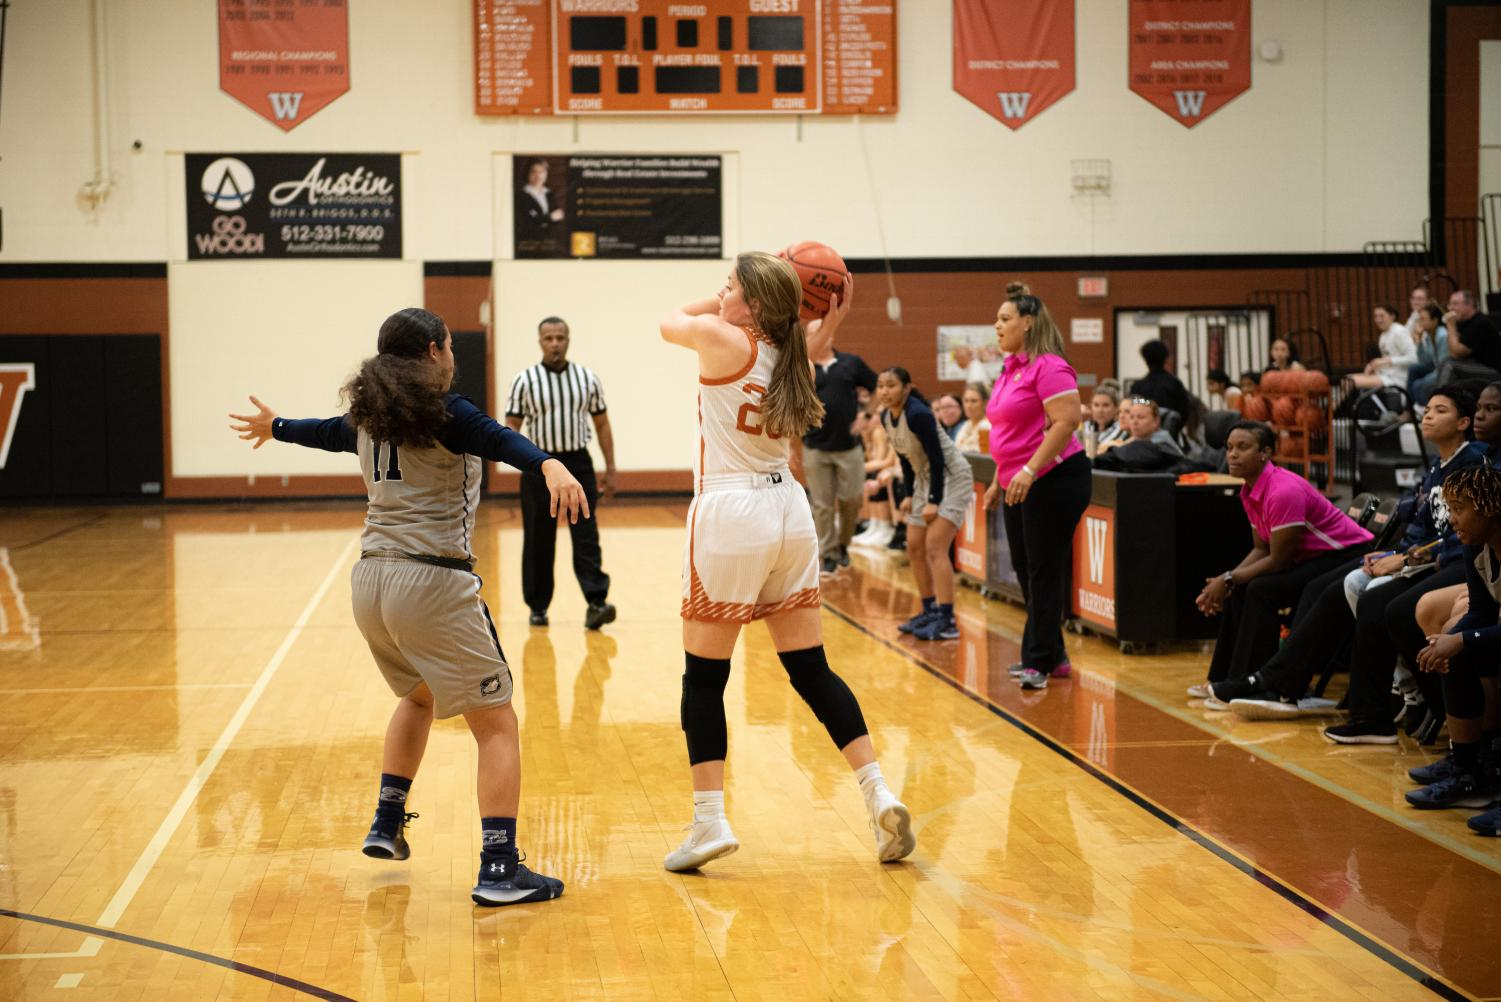 Peyton+Halley+%2721+throws+the+ball+above+the+defensive+player.+Halley%2C+a+junior%2C+plays+the+position+of+a+guard+on+the+team.